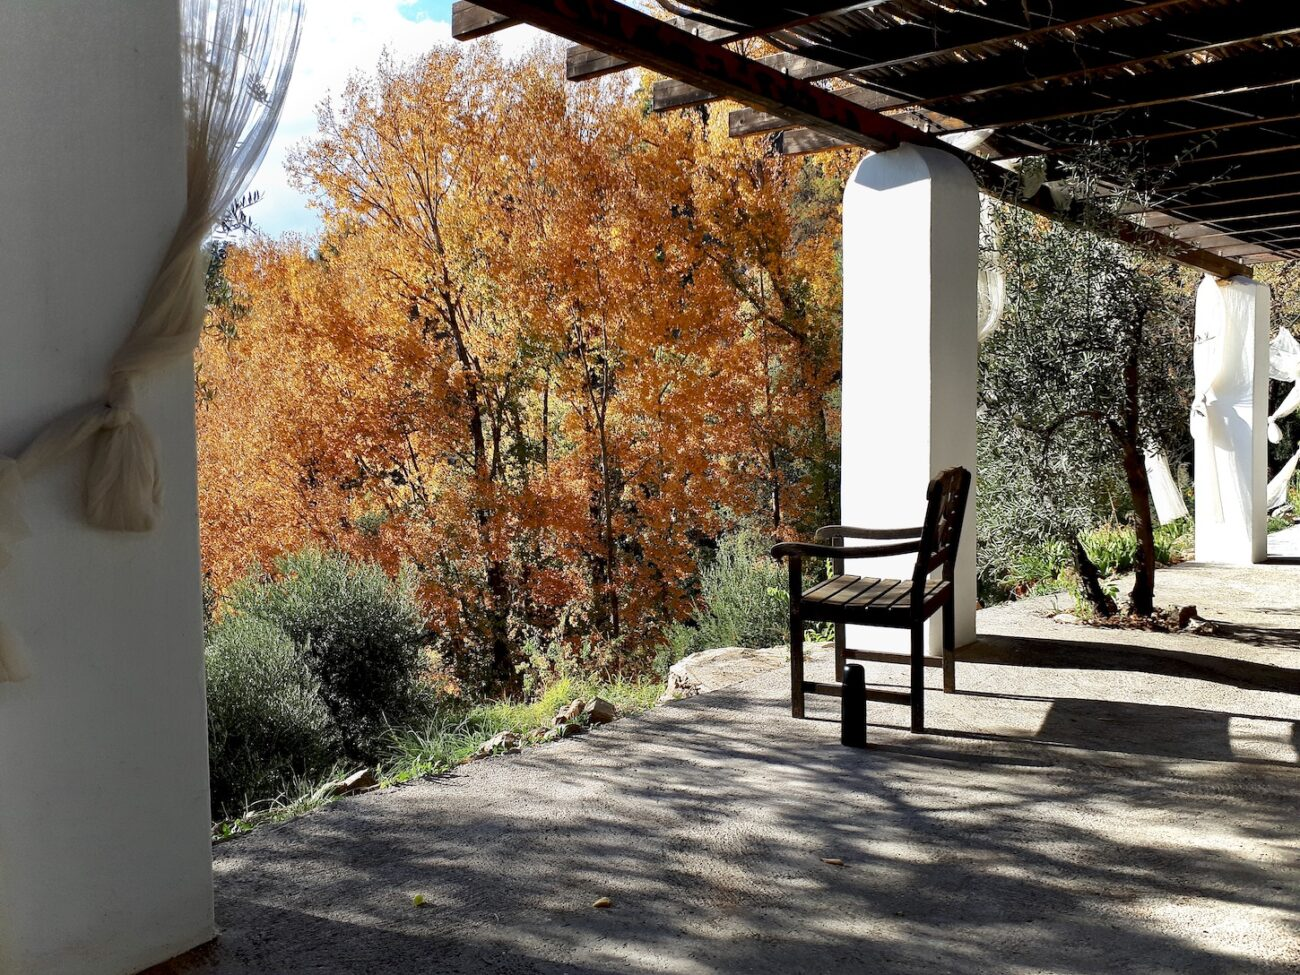 A veranda with fall colors